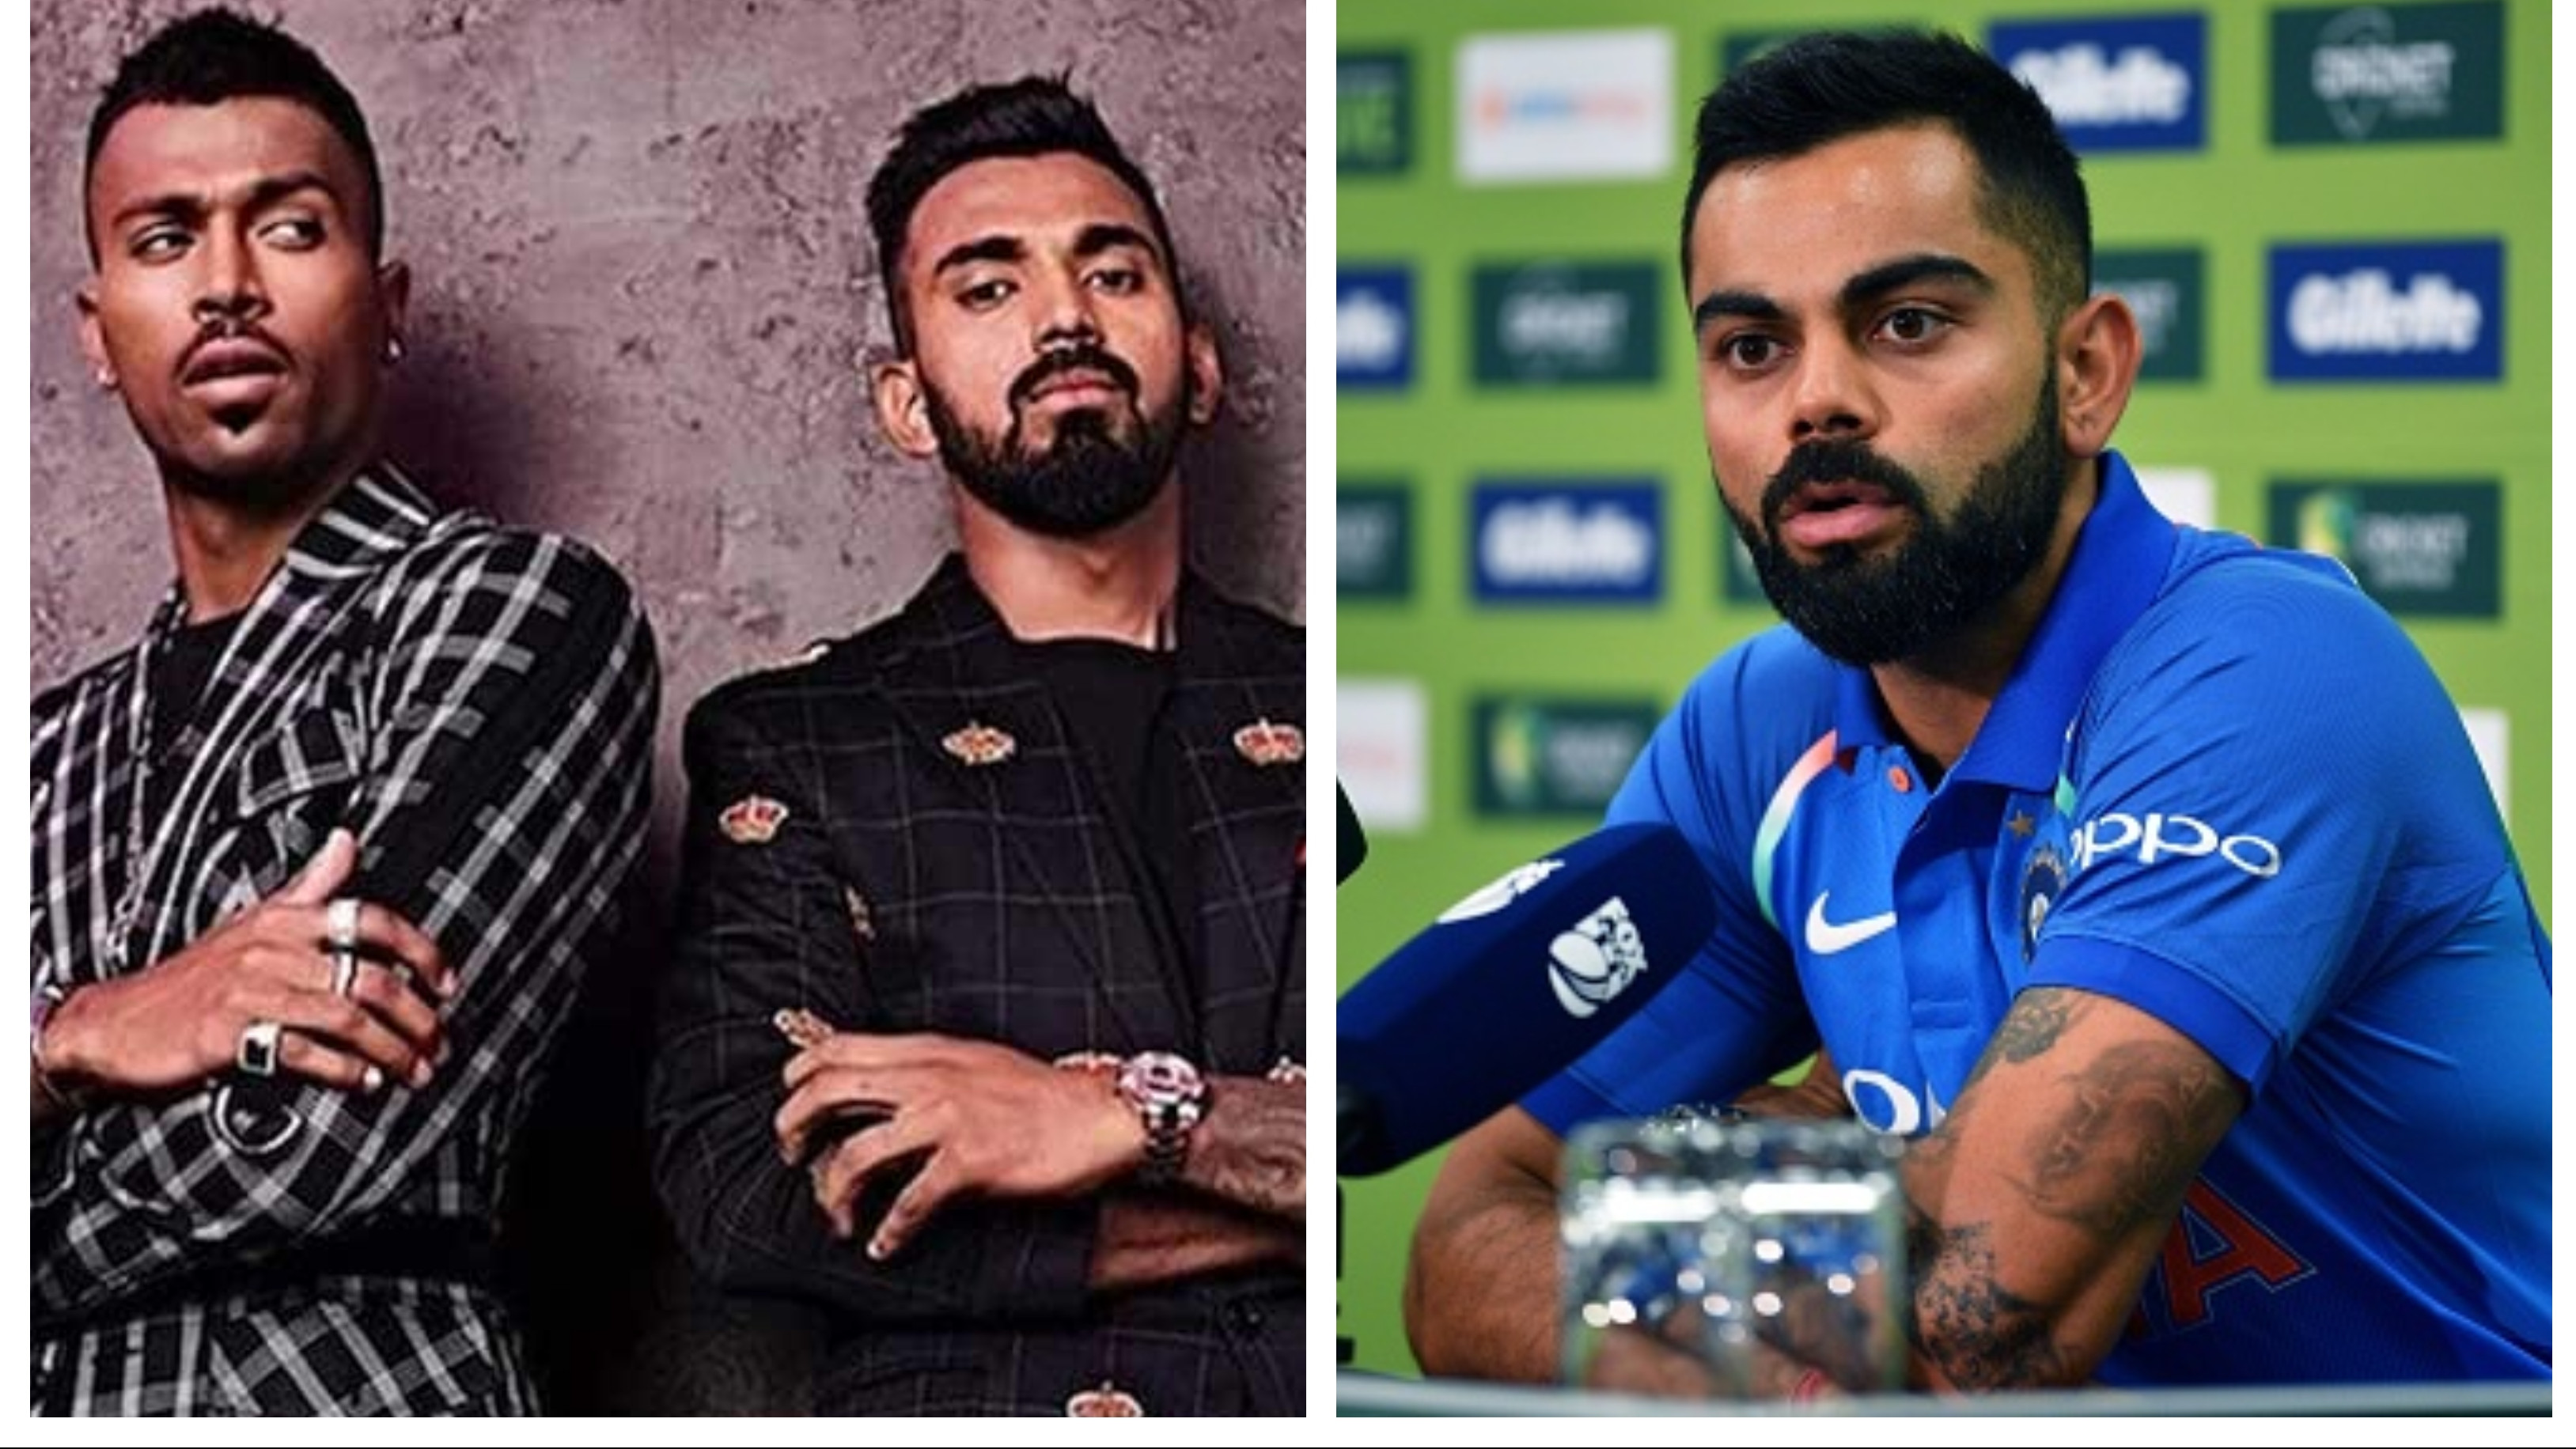 AUS v IND 2018-19: Virat Kohli breaks his silence on Pandya and Rahul's controversial comments